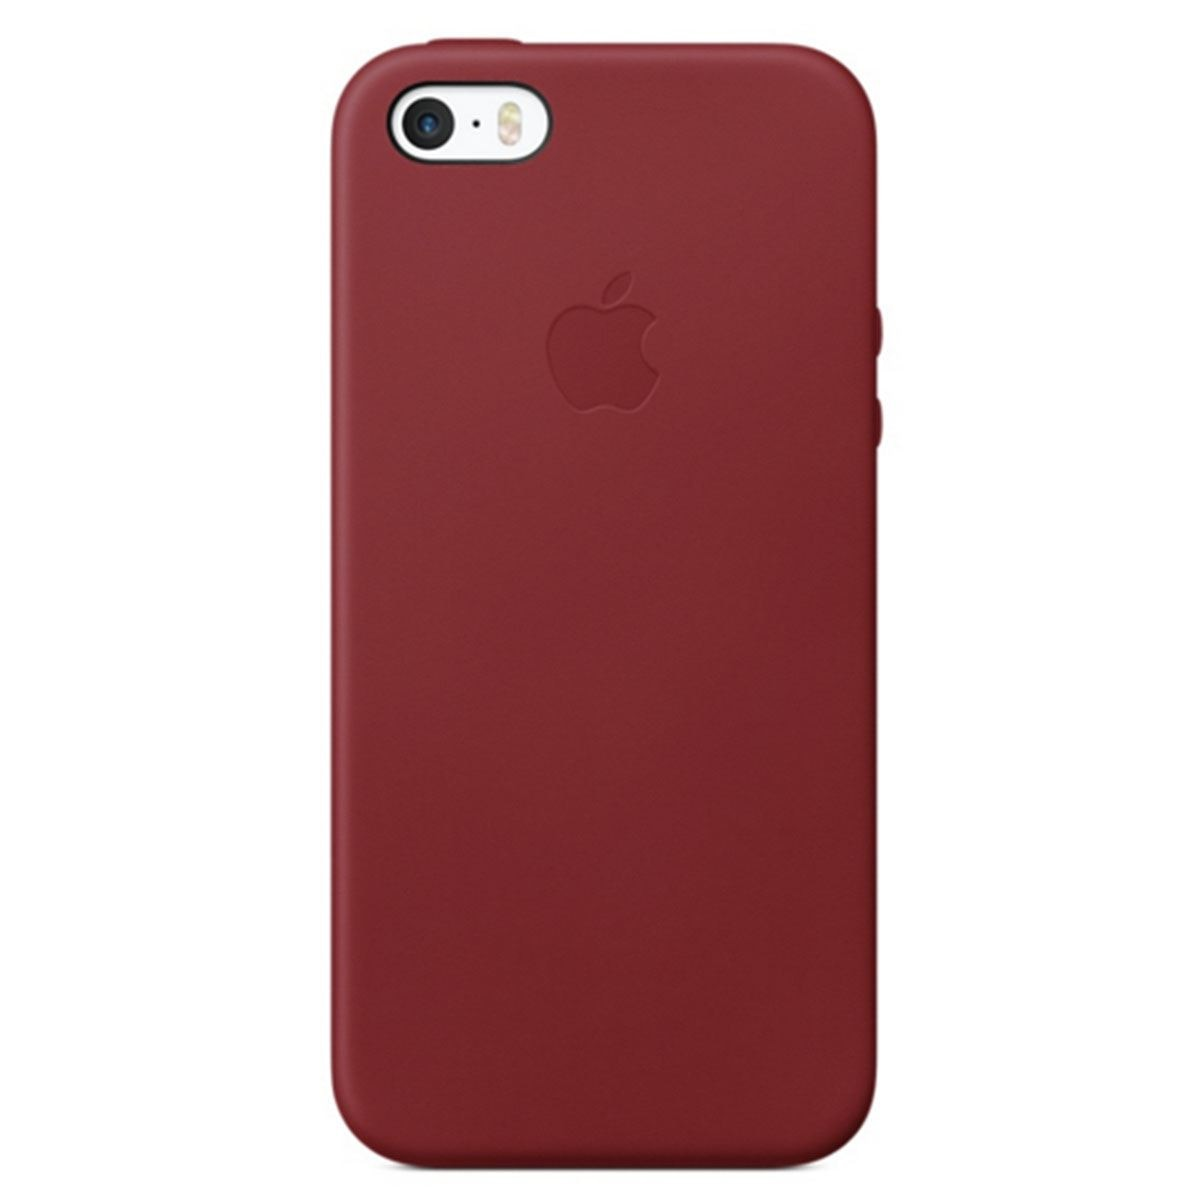 Funda iphone se roja piel  - Sanborns